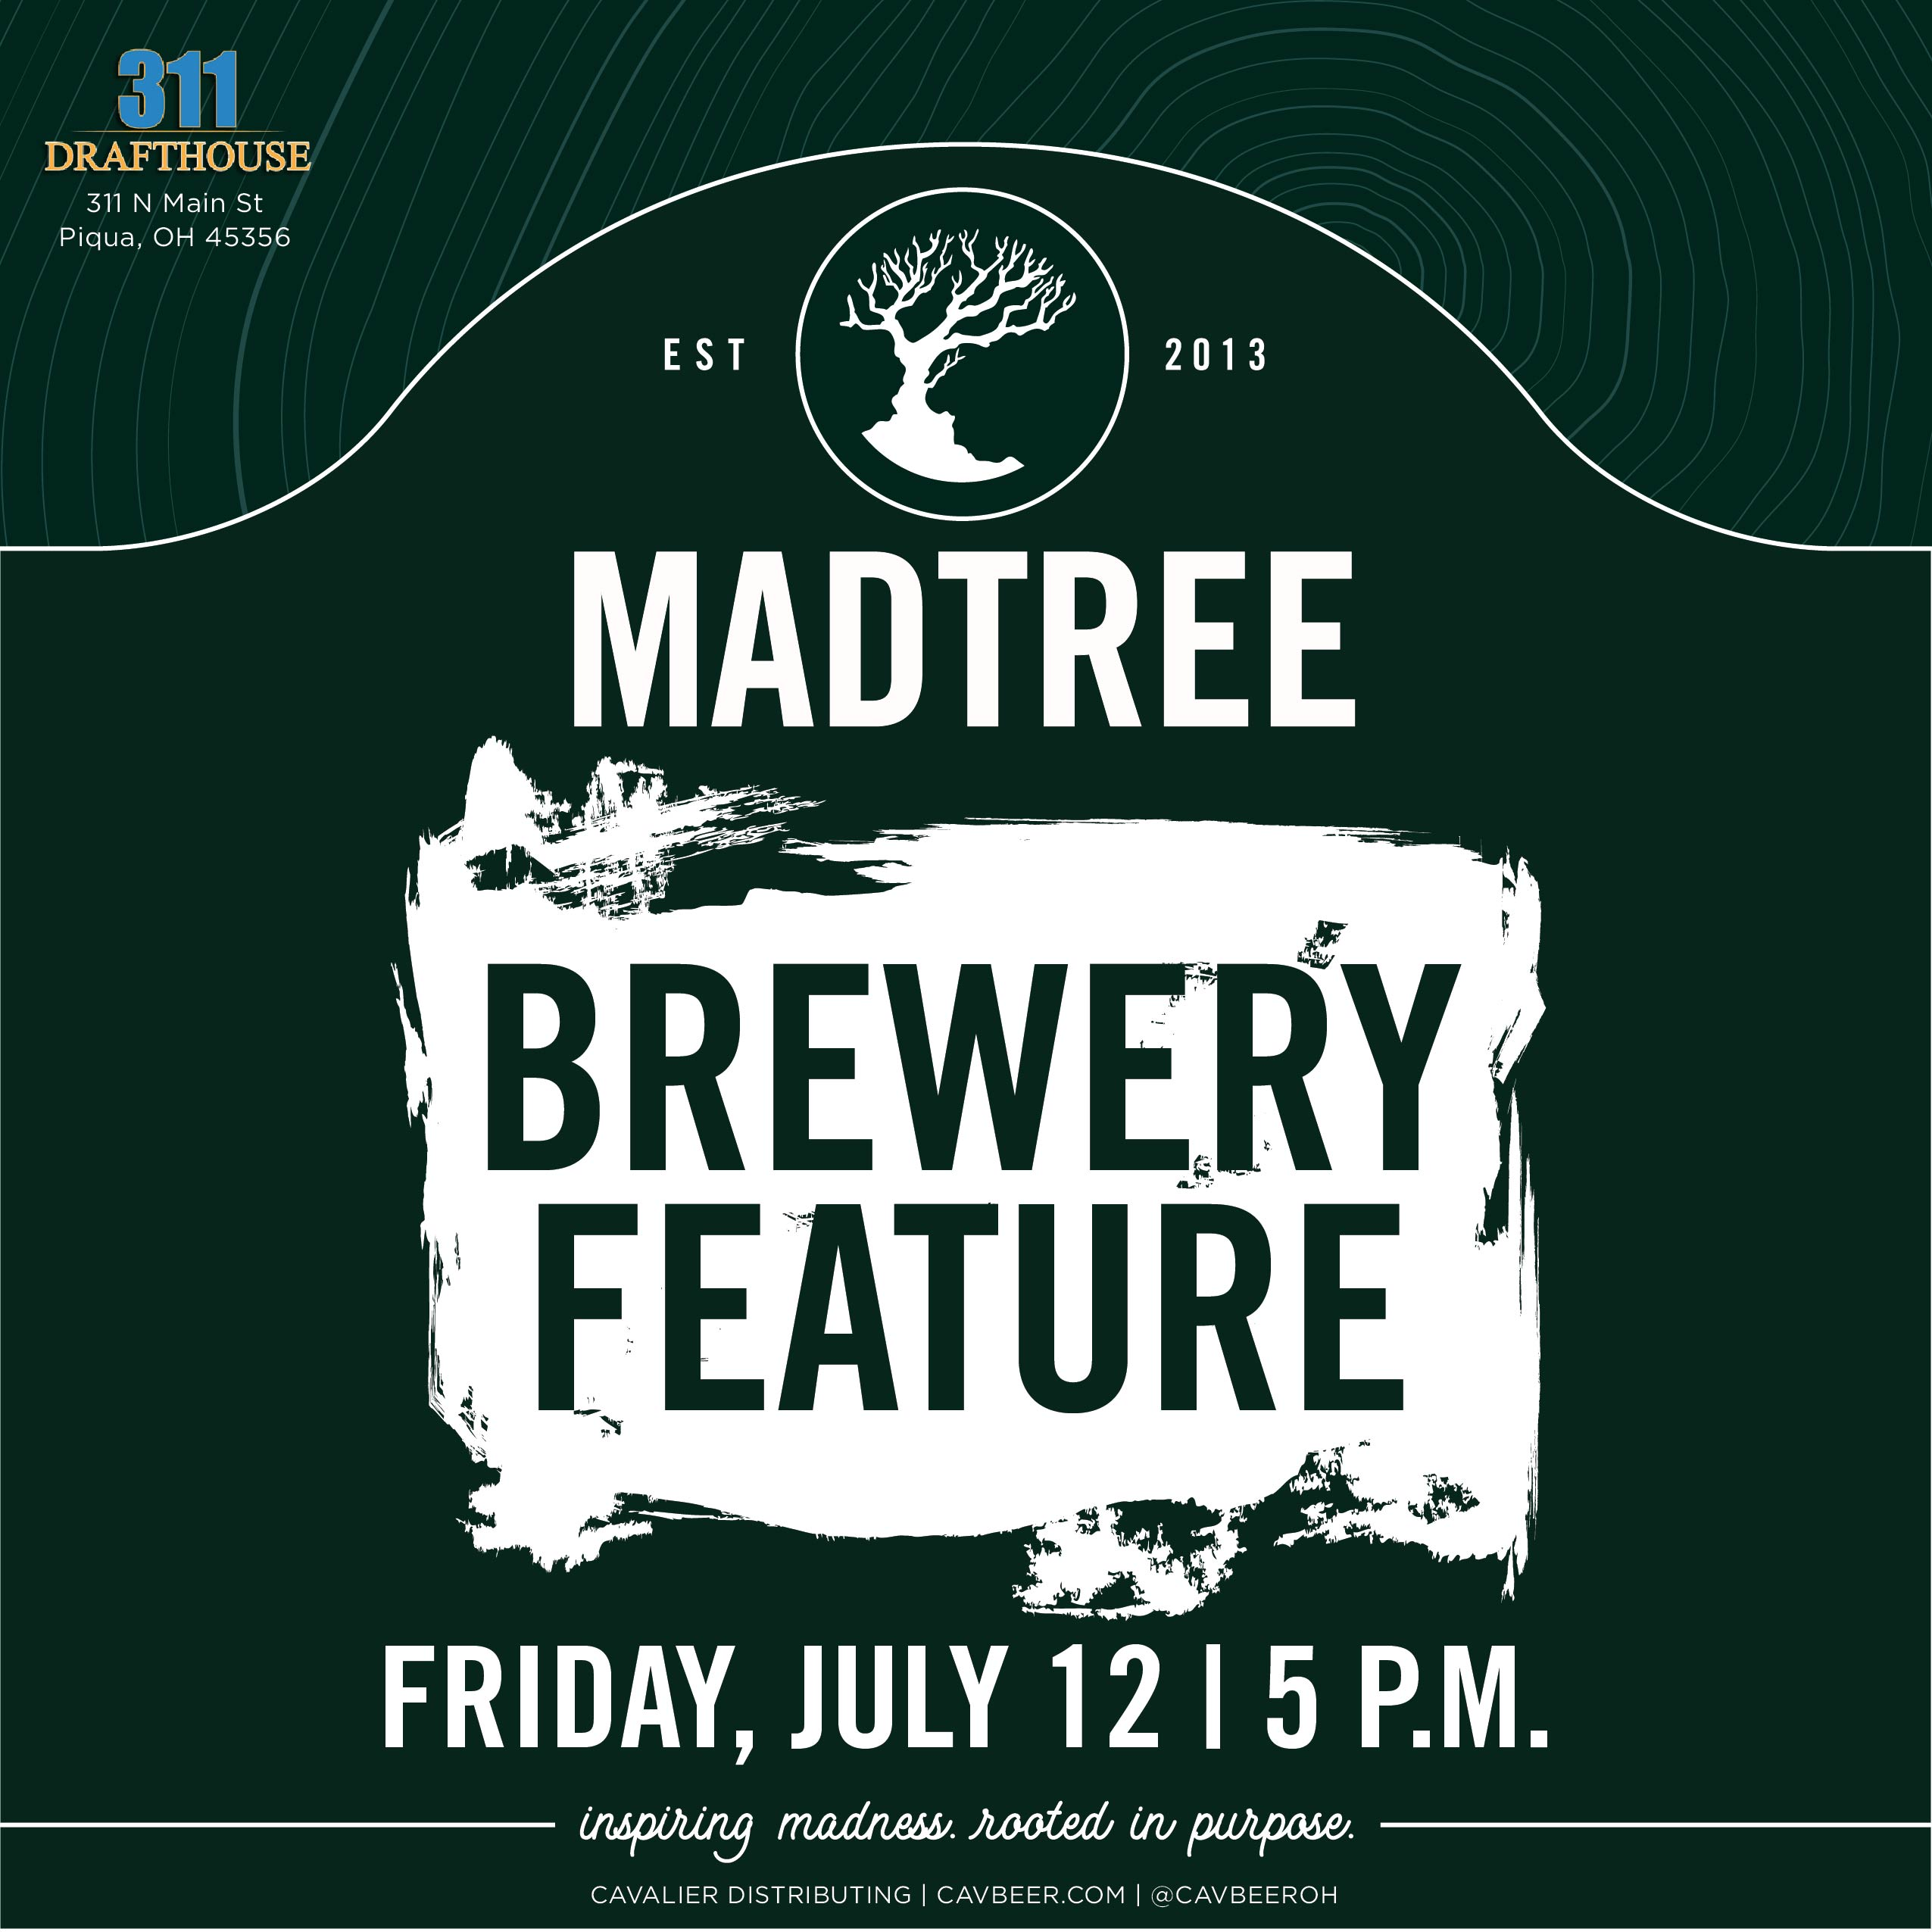 MadTree Brewery Feature @ 311 Drafthouse